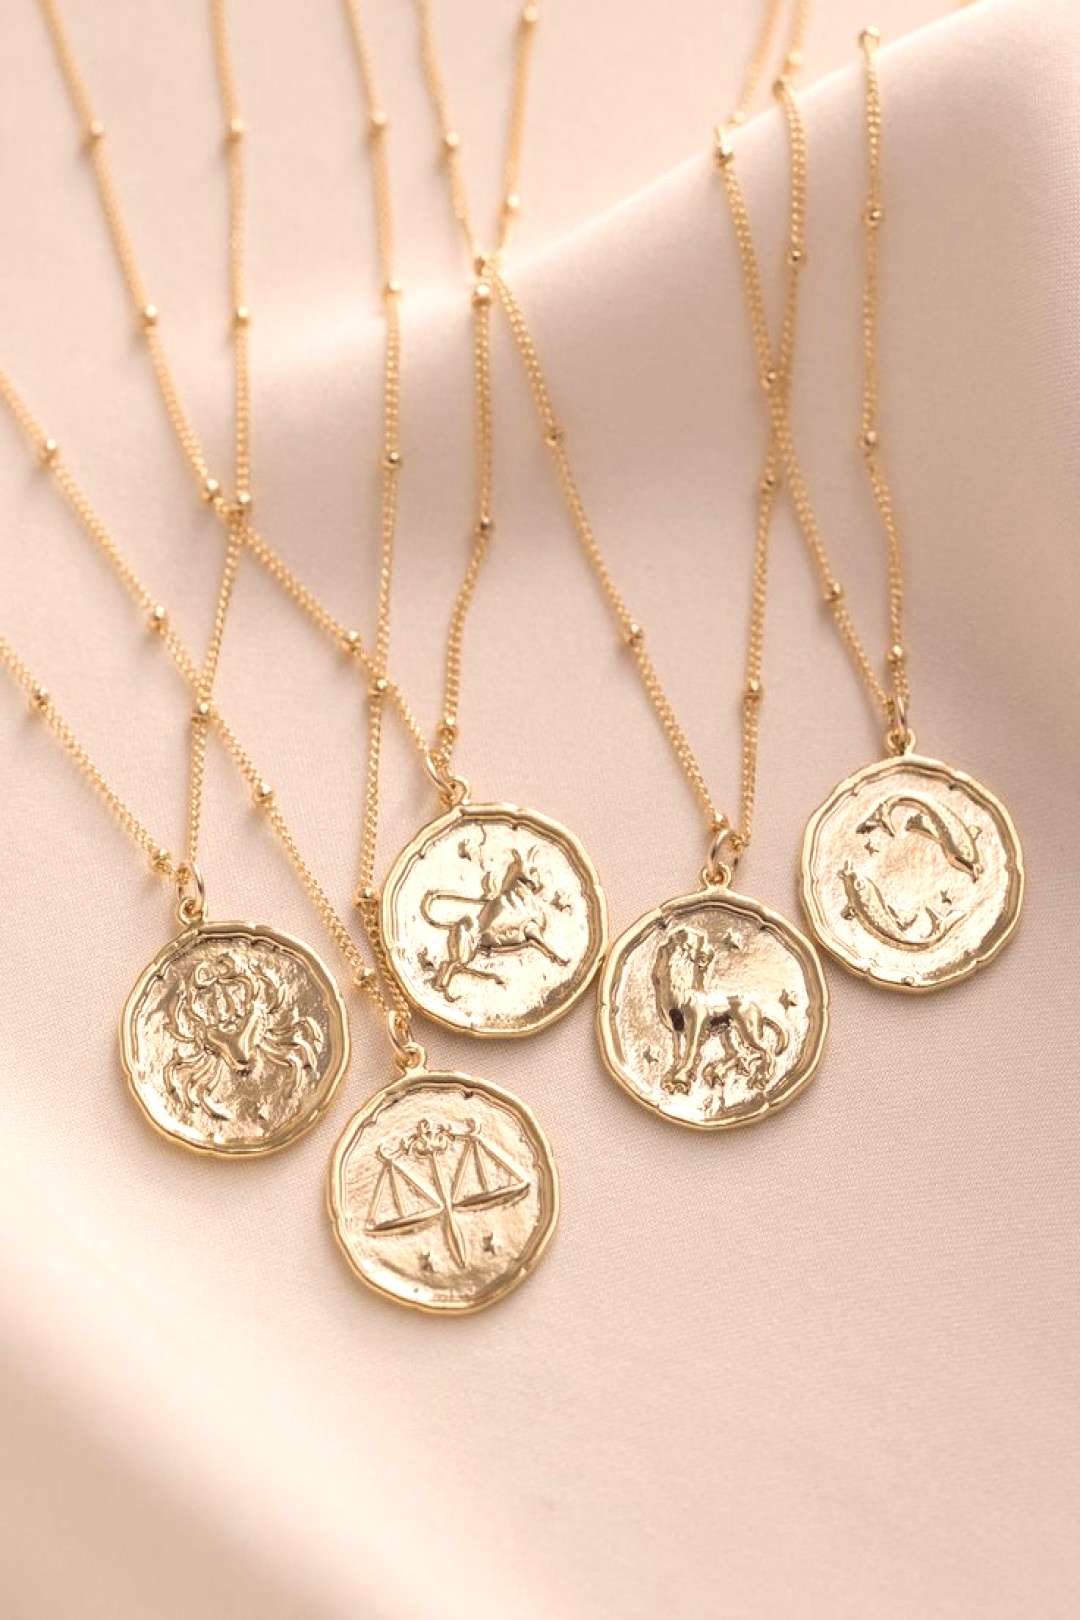 Our zodiac coin necklace is the perfect personalized gift for anyone - whether youre a Scorpio, Ge